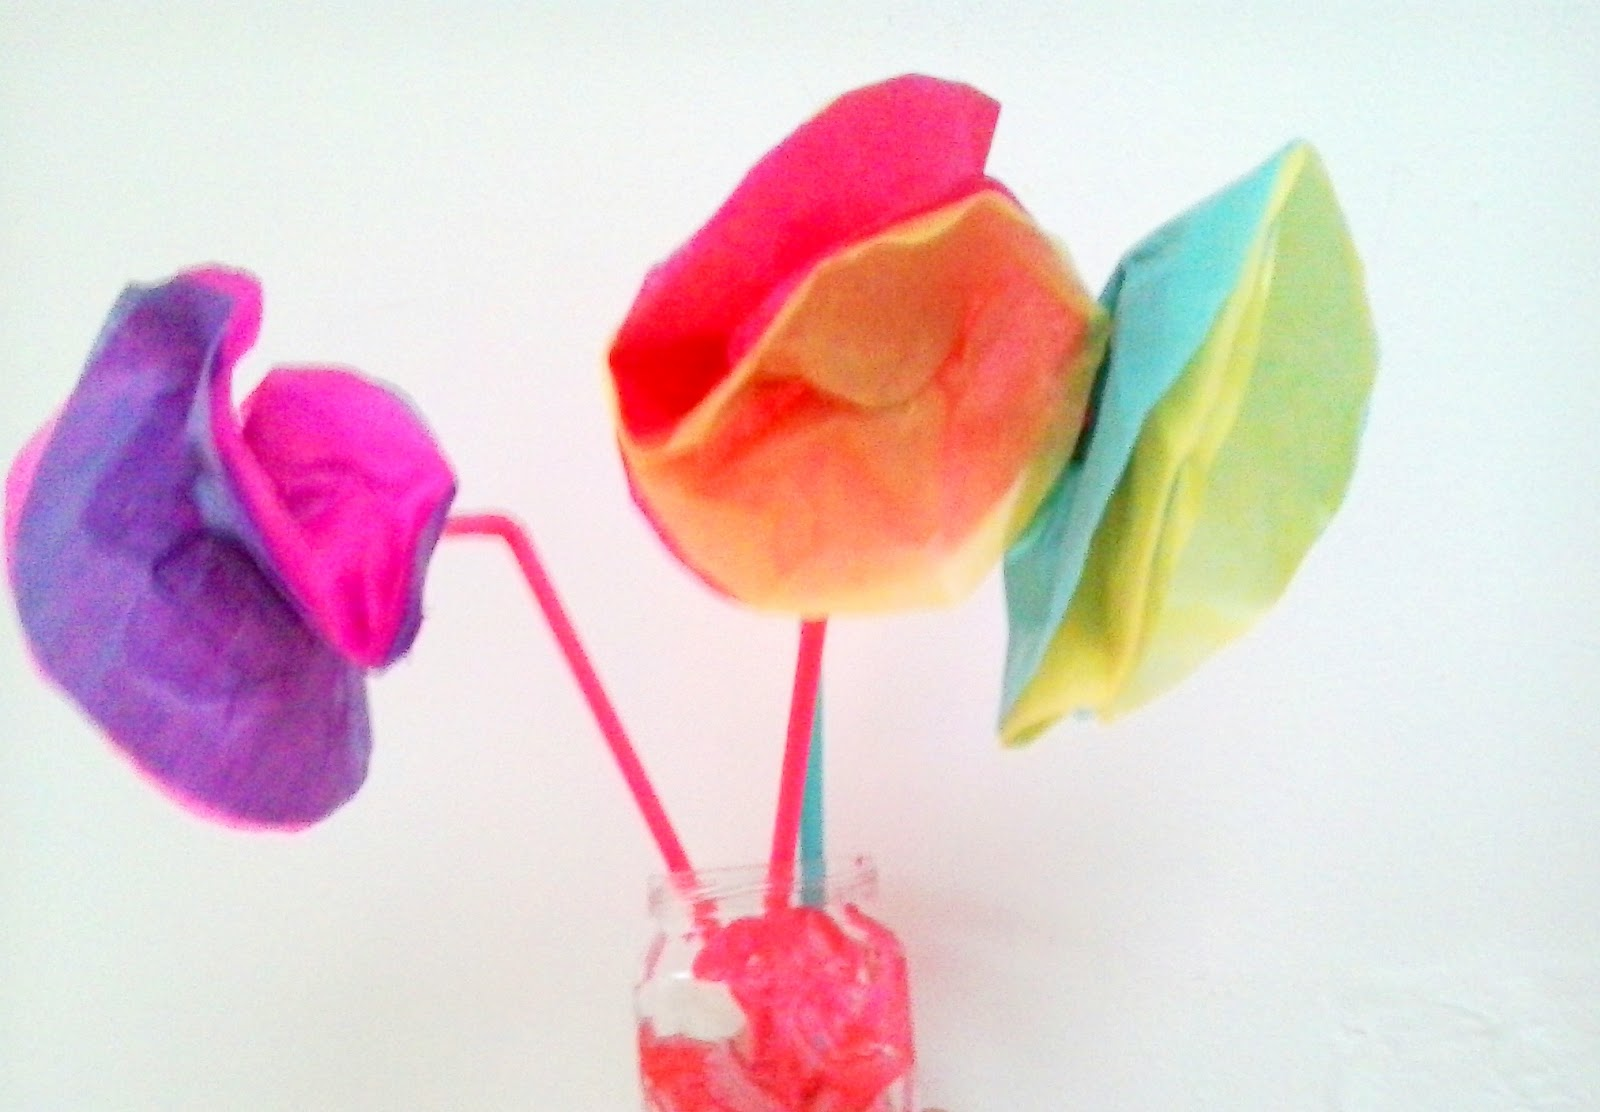 Why Not Brighten Up Someones Day By Handcrafting Some Cheap Cheerful Tissue Paper Flowers With The Kids These Colourful Are Easy Enough To Make